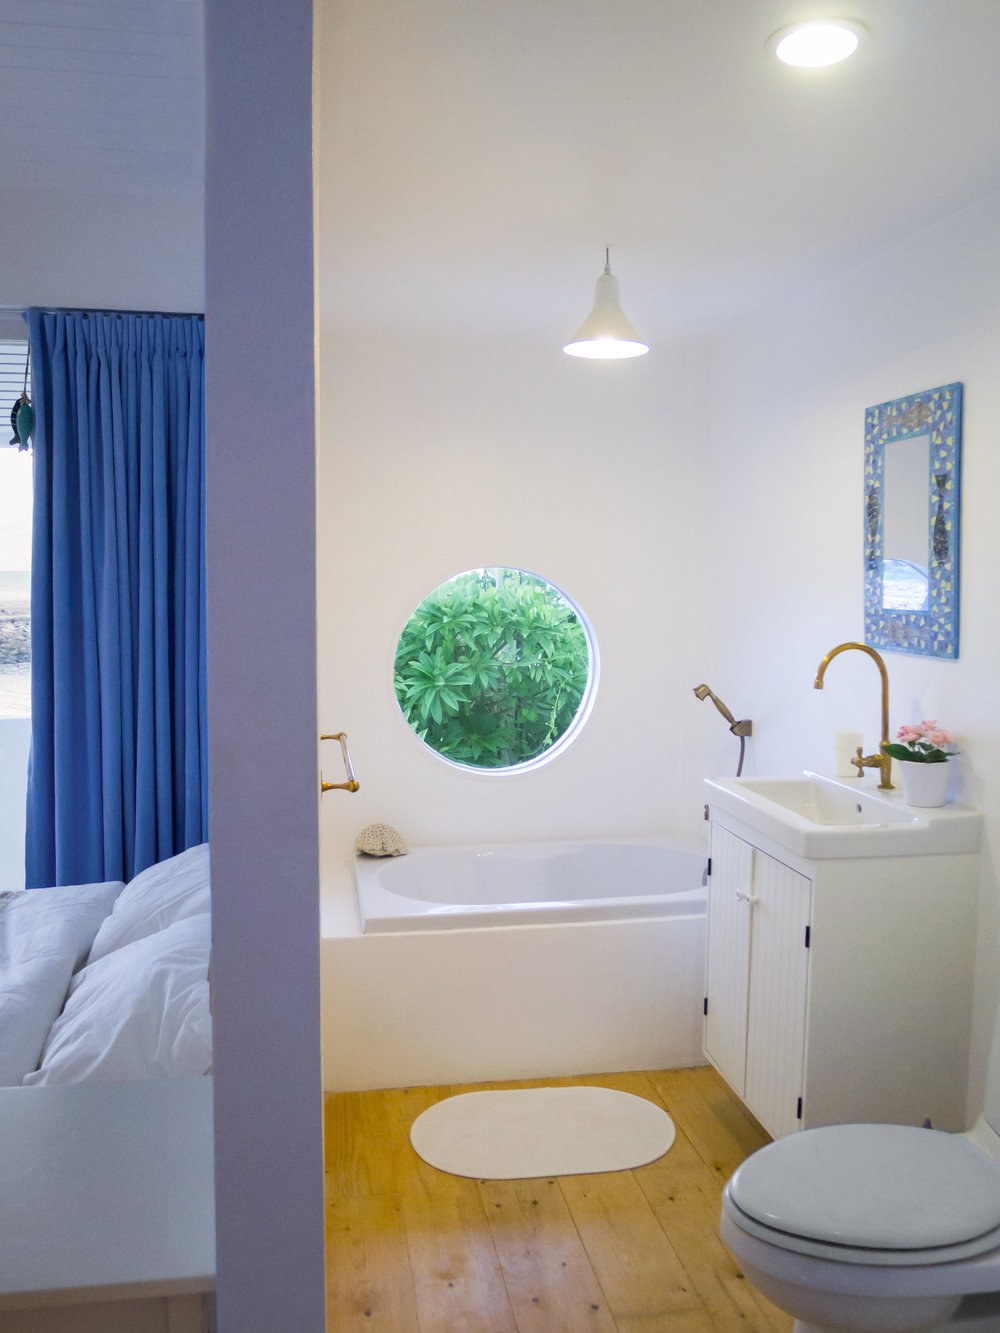 Master Bathroom with circular window